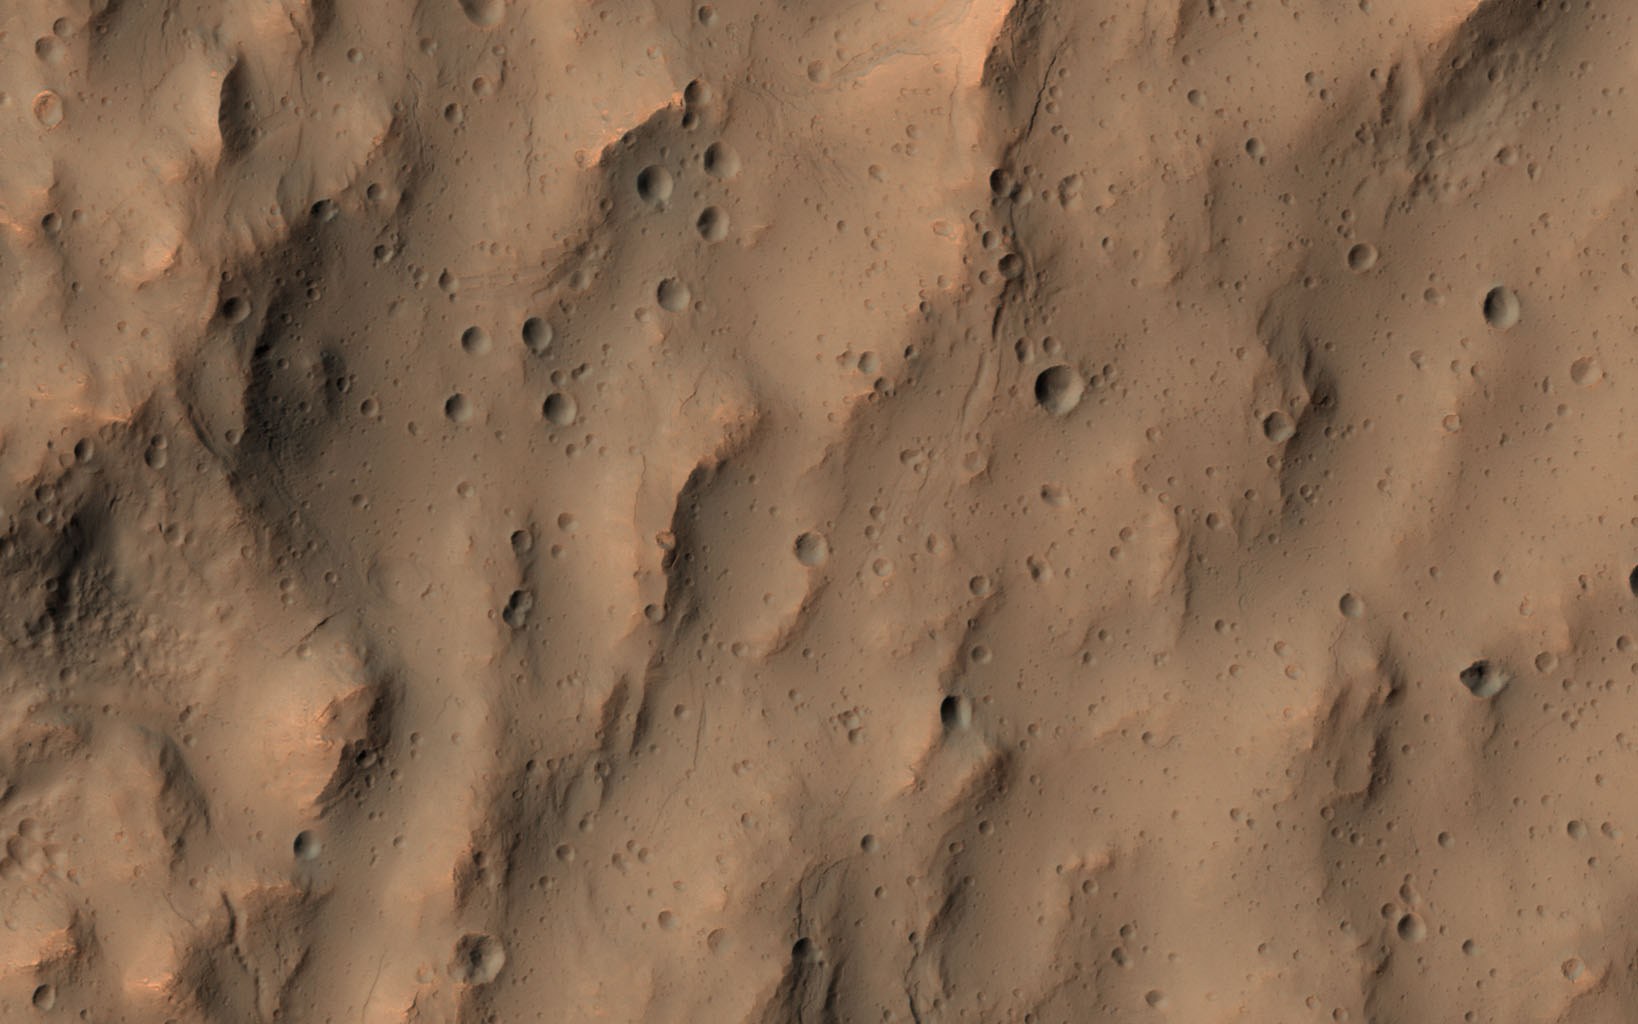 This image of a southern mid-latitude crater was intended to investigate the lineated material on the crater floor. NASA's Mars Reconnaissance Orbiter reveals a landscape peppered by small impact craters.